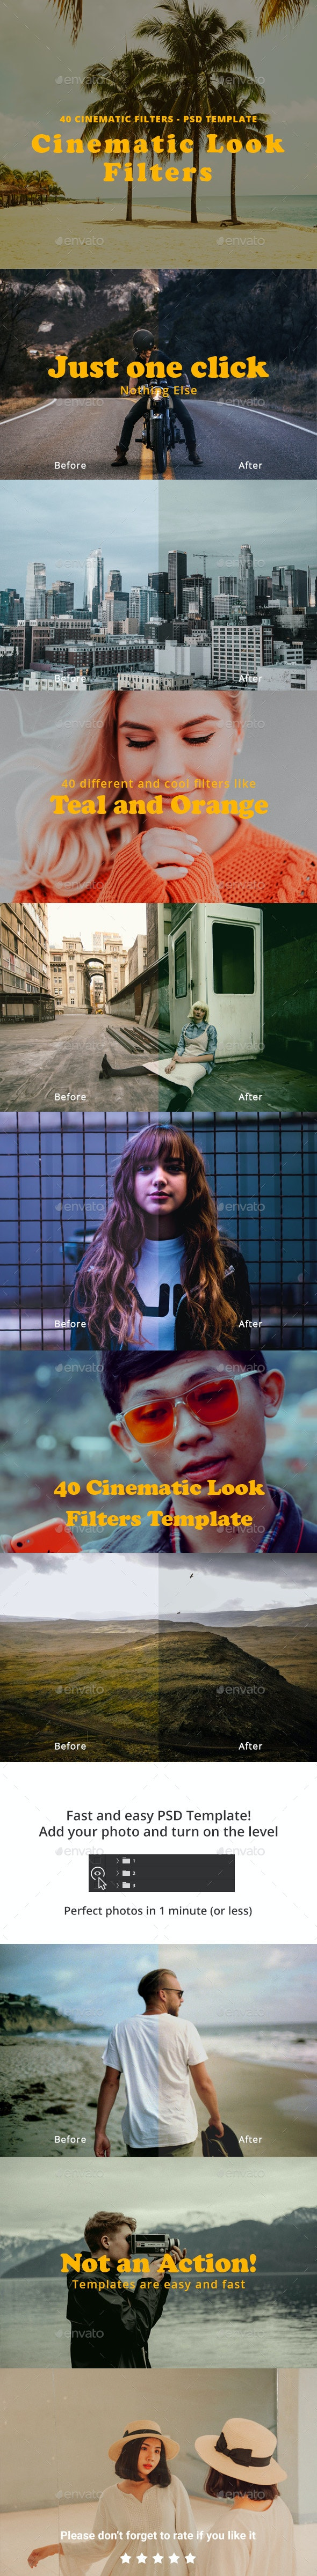 40 Cinematic Look Filters Template - Photo Templates Graphics